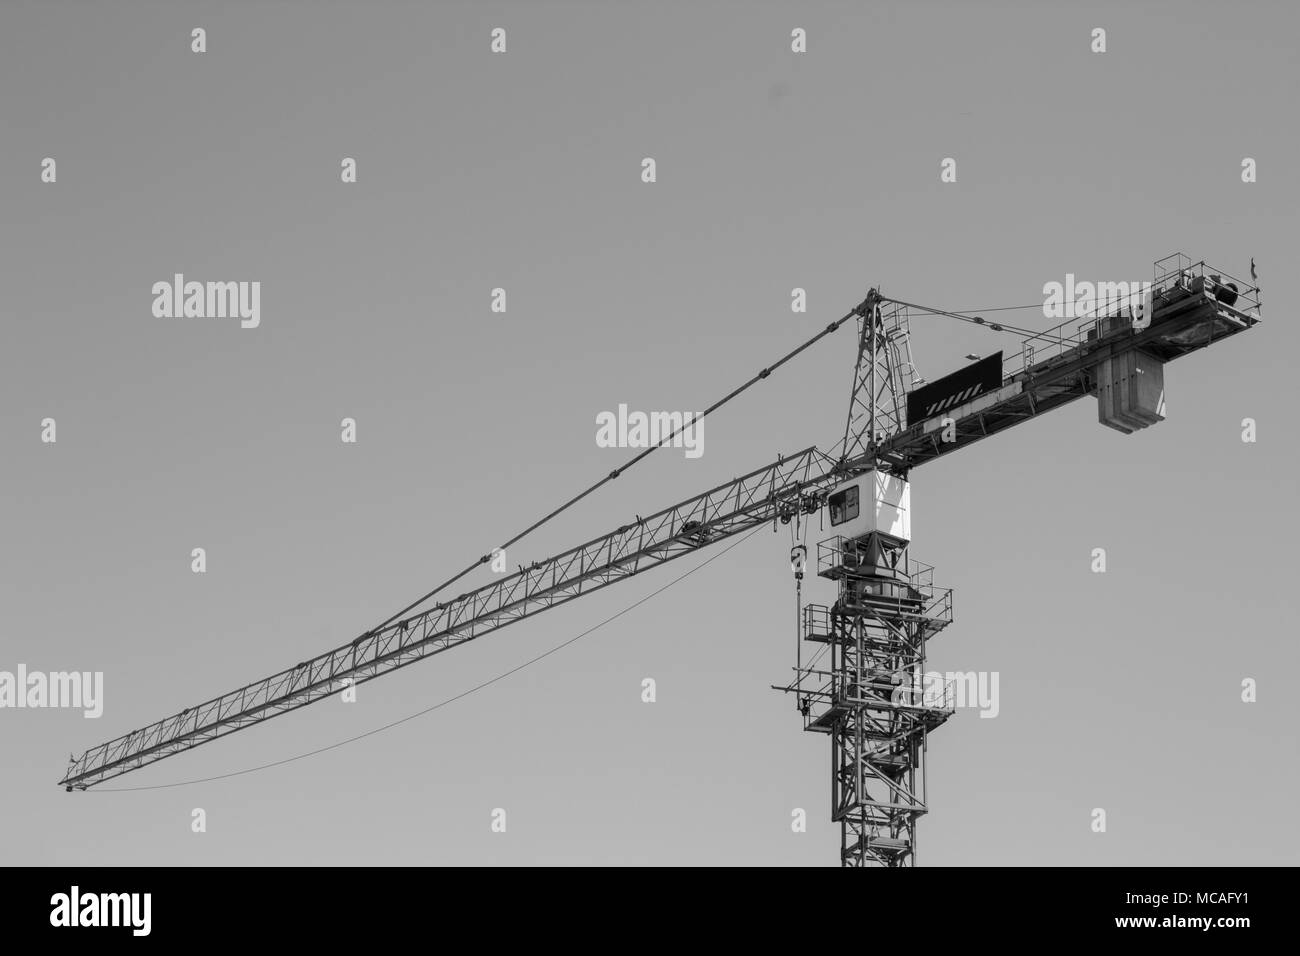 Photo of a construction crane in black and white. - Stock Image